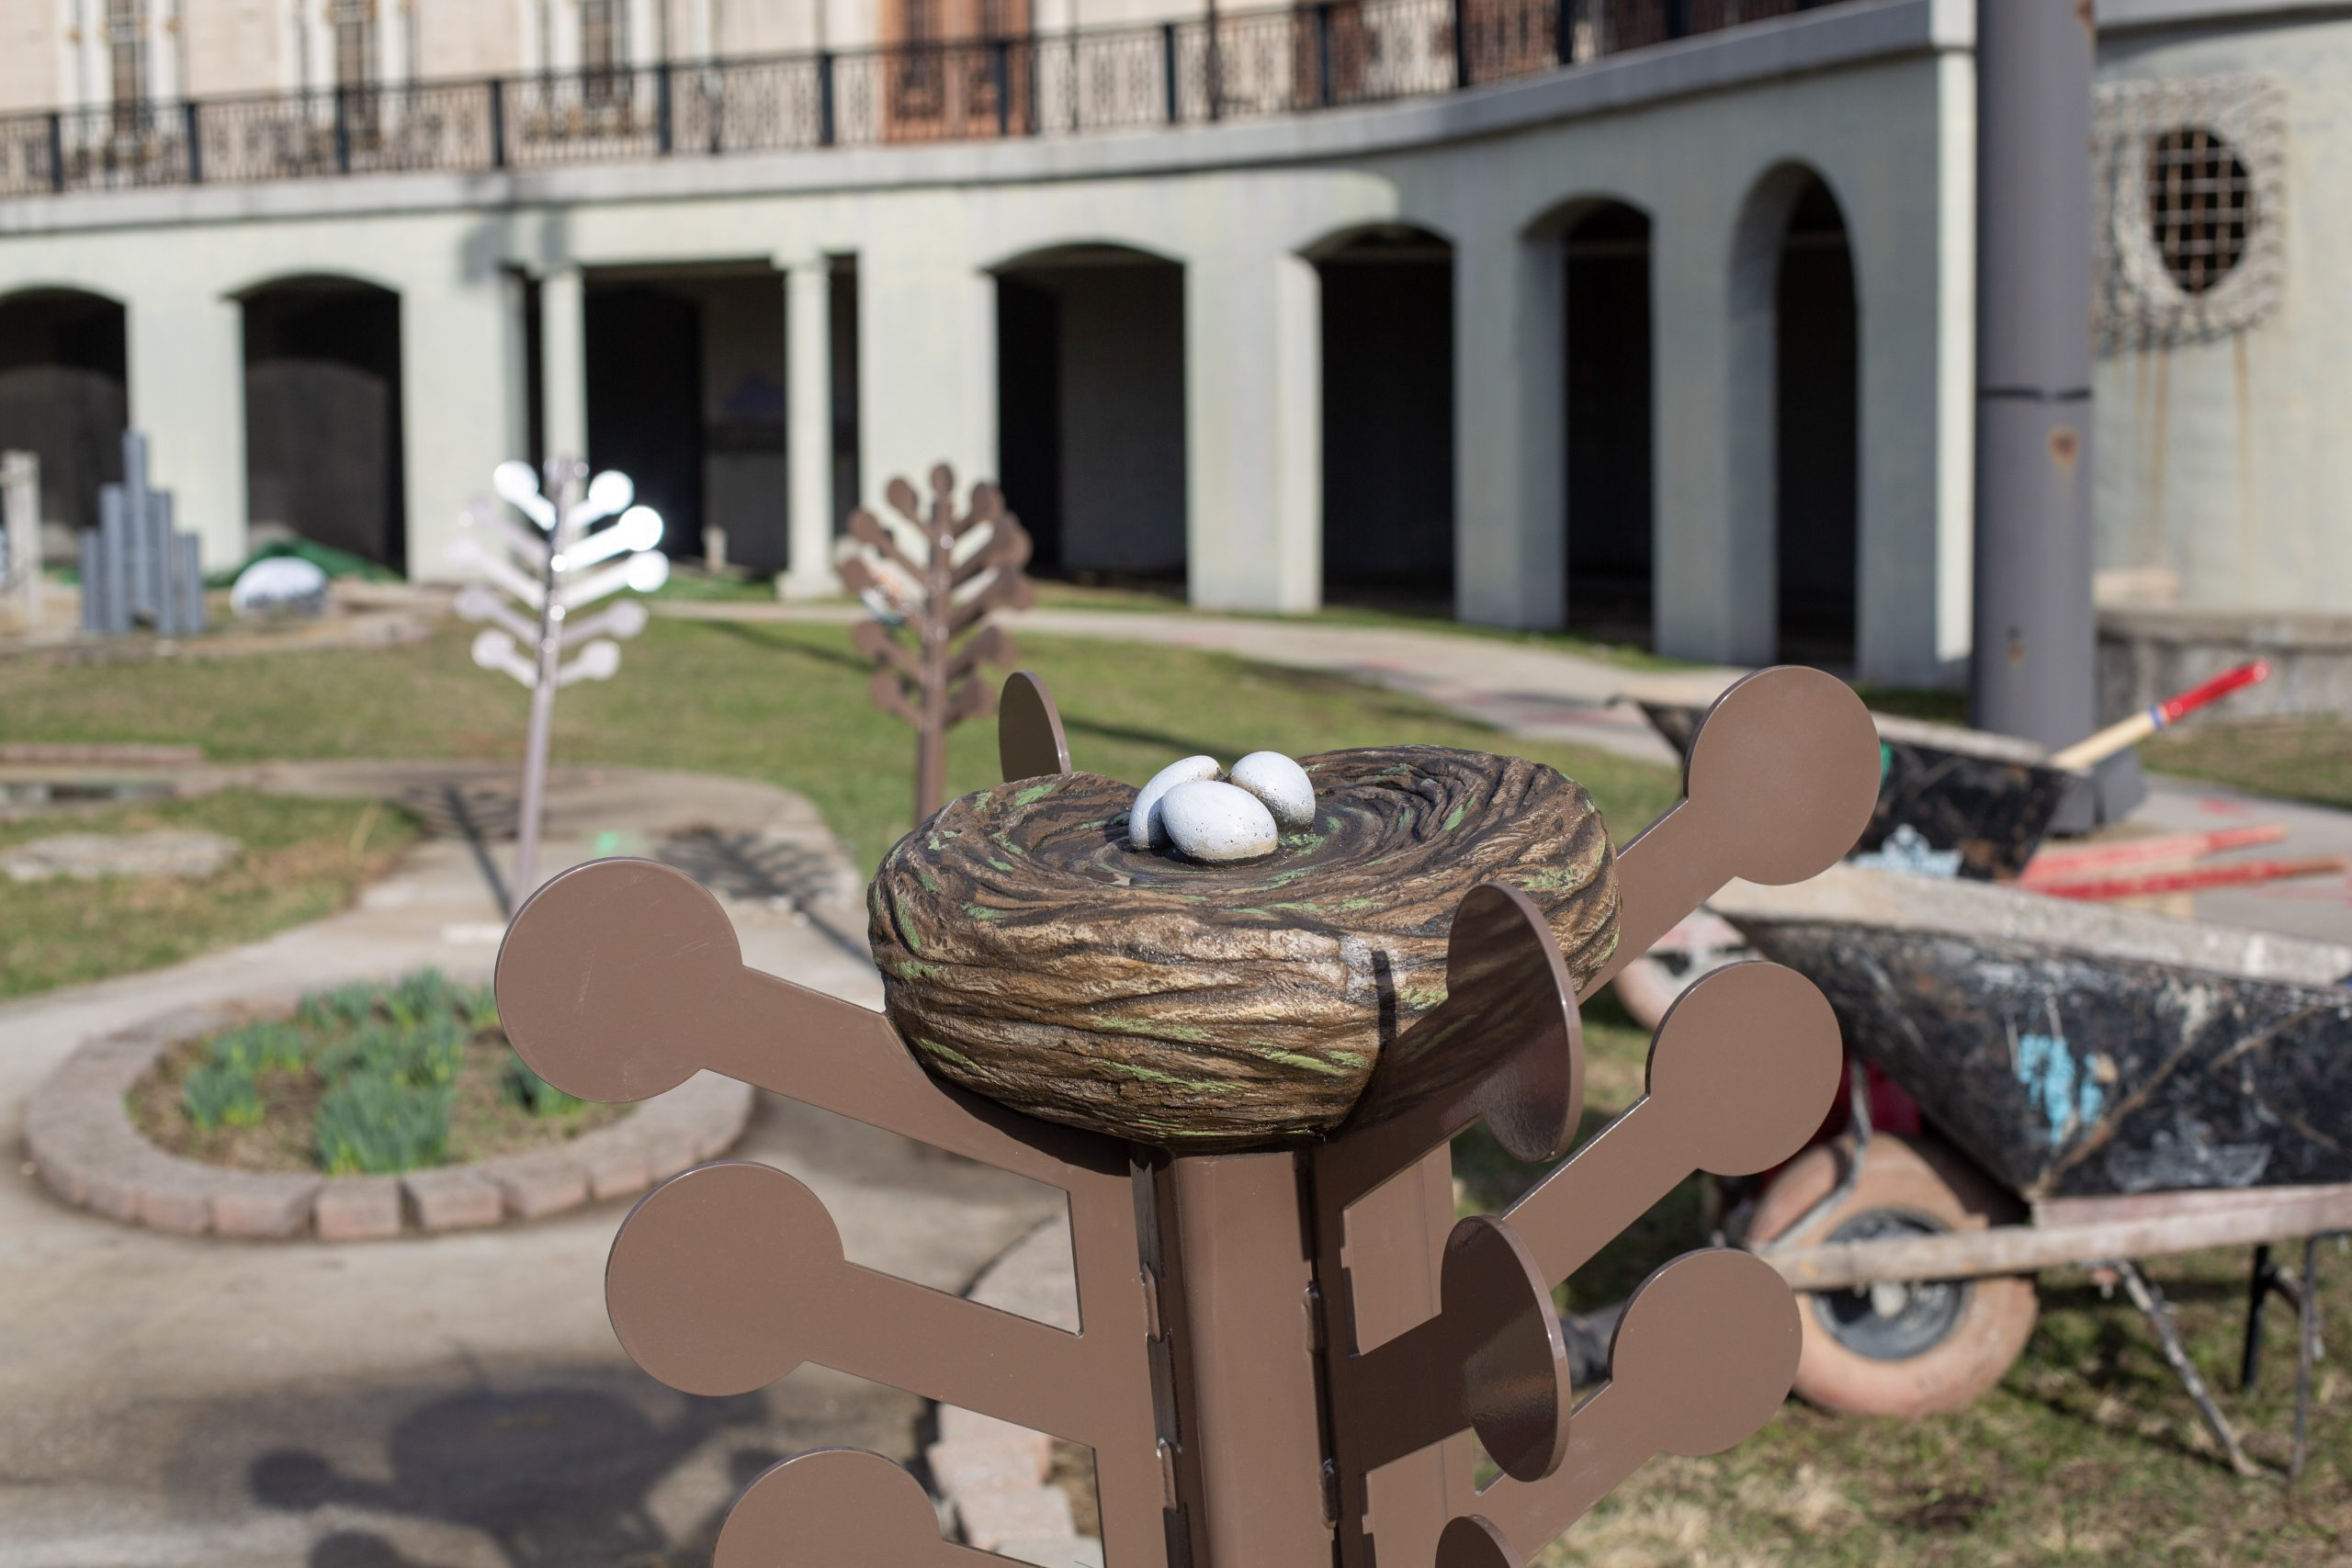 A bird's nest fixture is part of the conservation-themed golf course